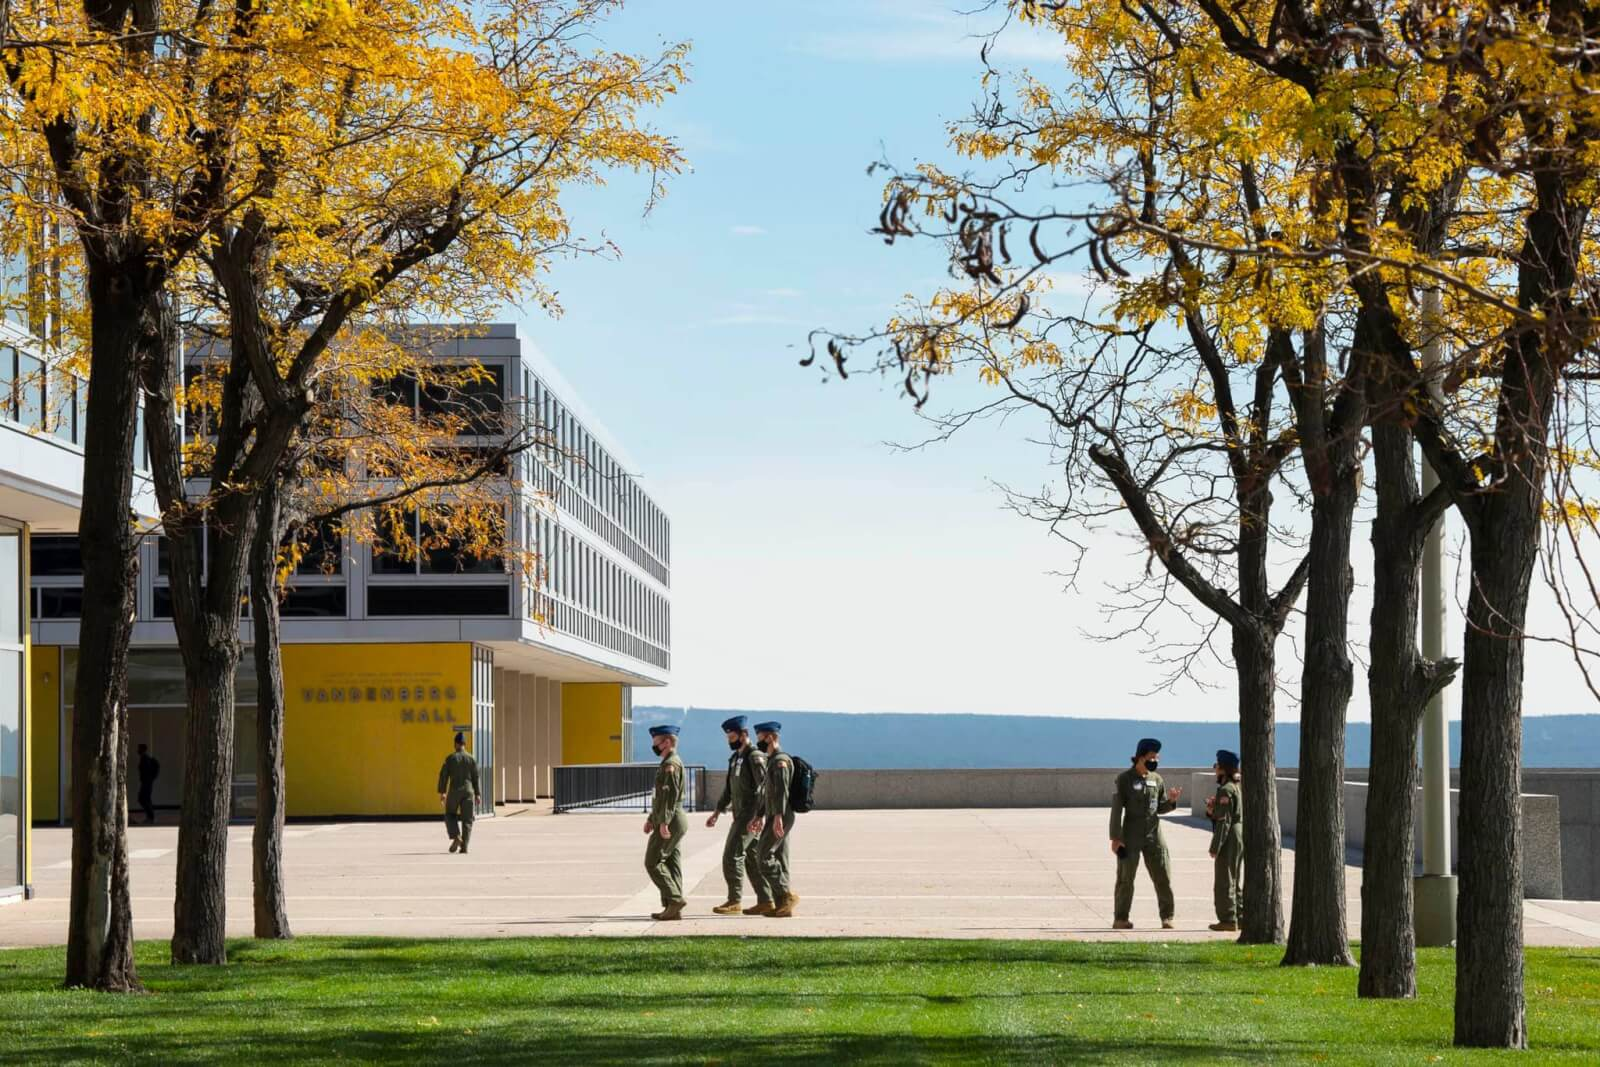 cadets walking on campus